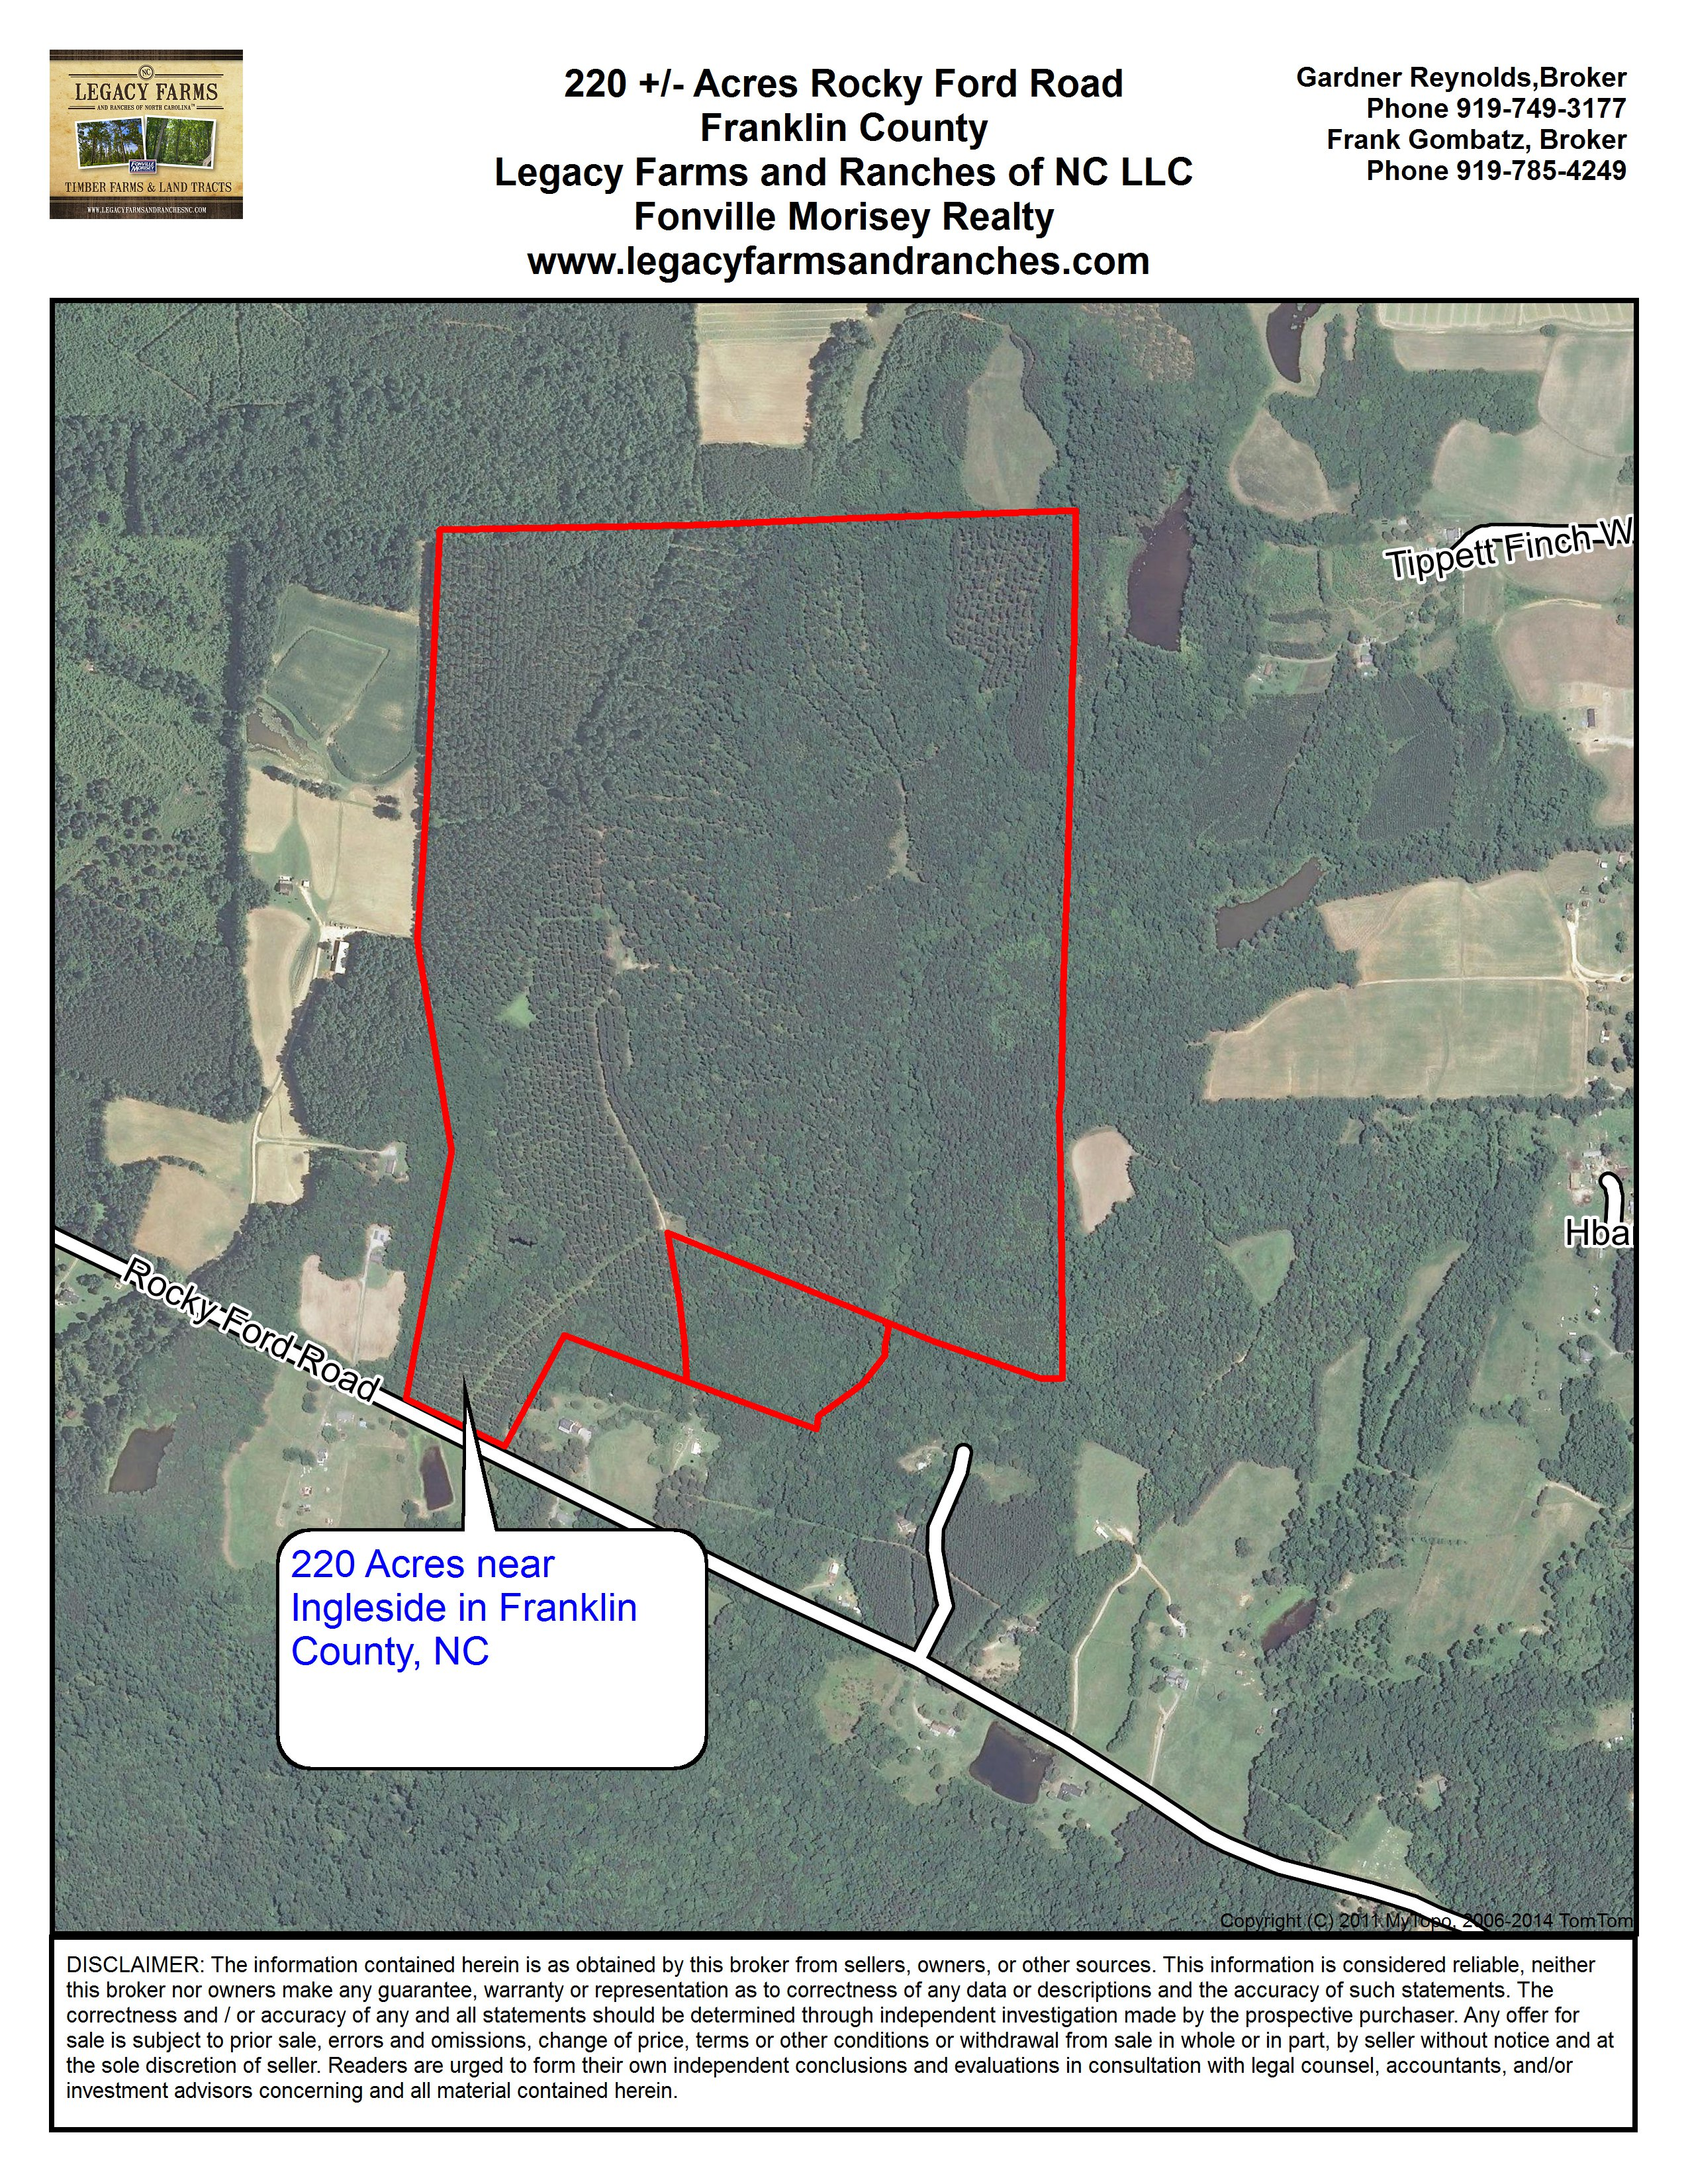 Ford Of Franklin >> 220 Acres on Rocky Ford Road near Ingleside and Hwy 401 in ...